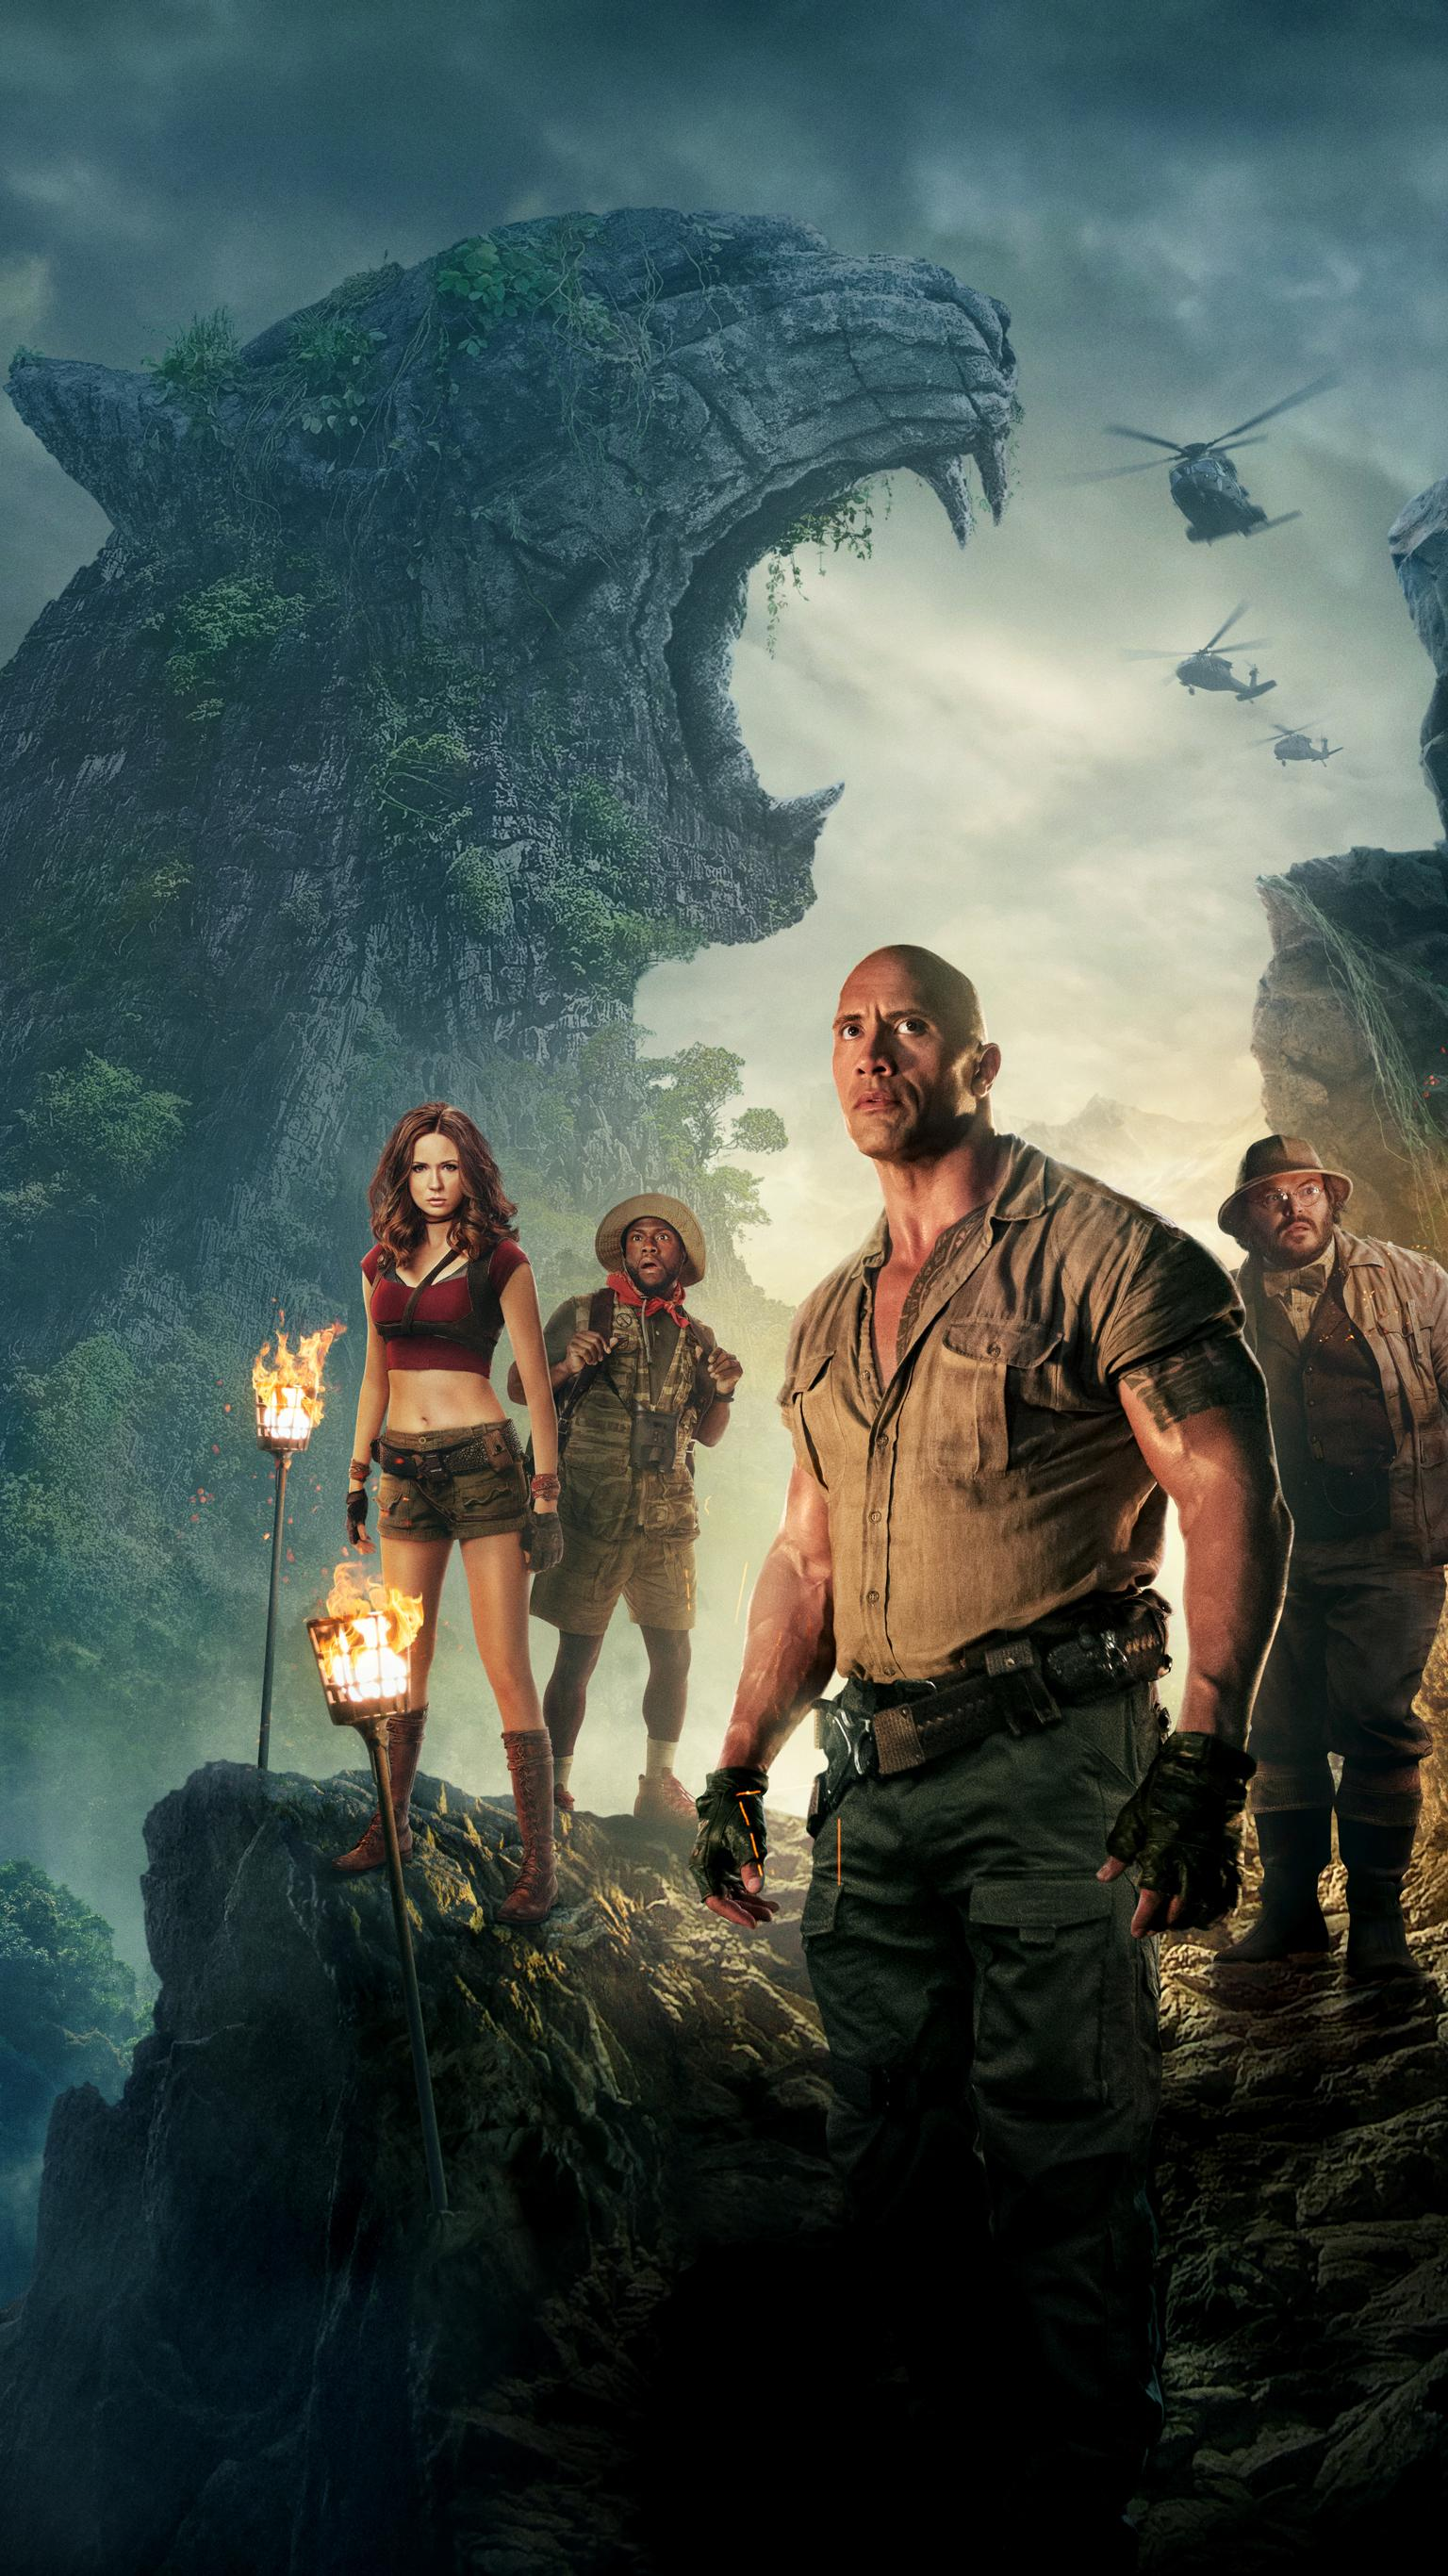 Jumanji: Welcome To The Jungle [DVD] - Xtra-vision Xpress